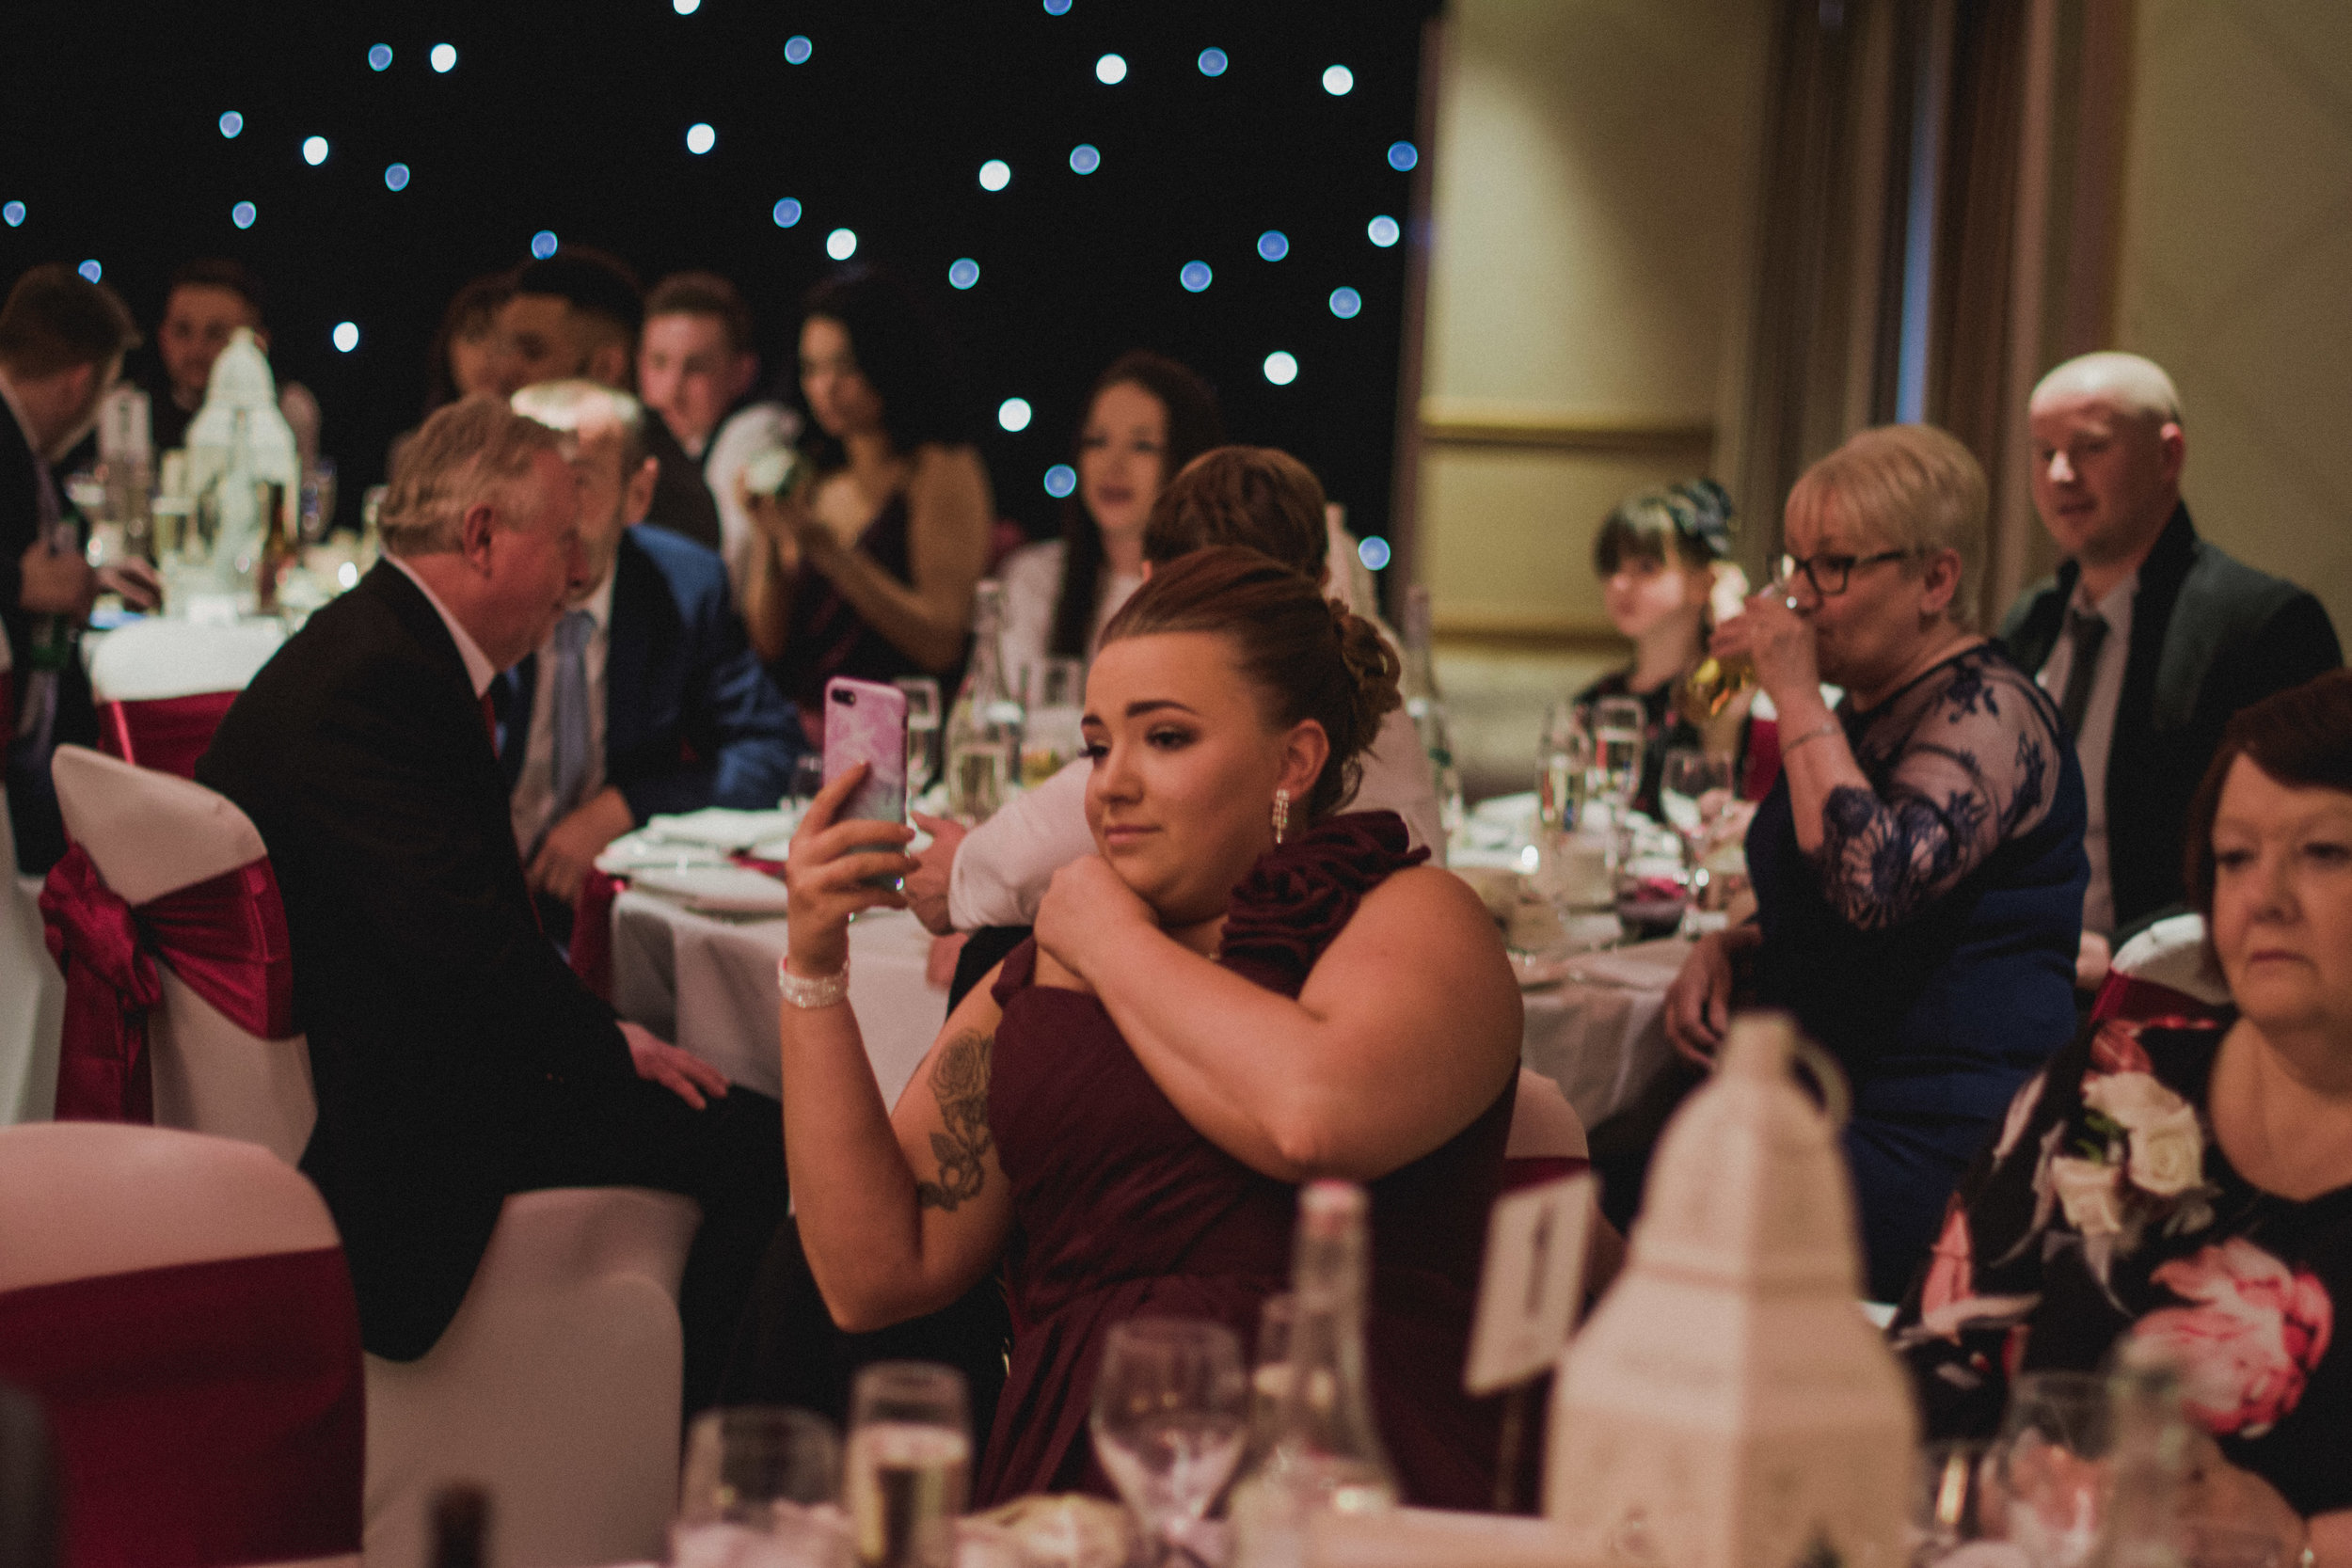 Cheshire wedding photographer porthmadog wedding photographer wedding photographer shropshire wedding photographer italian wedding photographer award winning wedding photographer (1 of 1).jpg